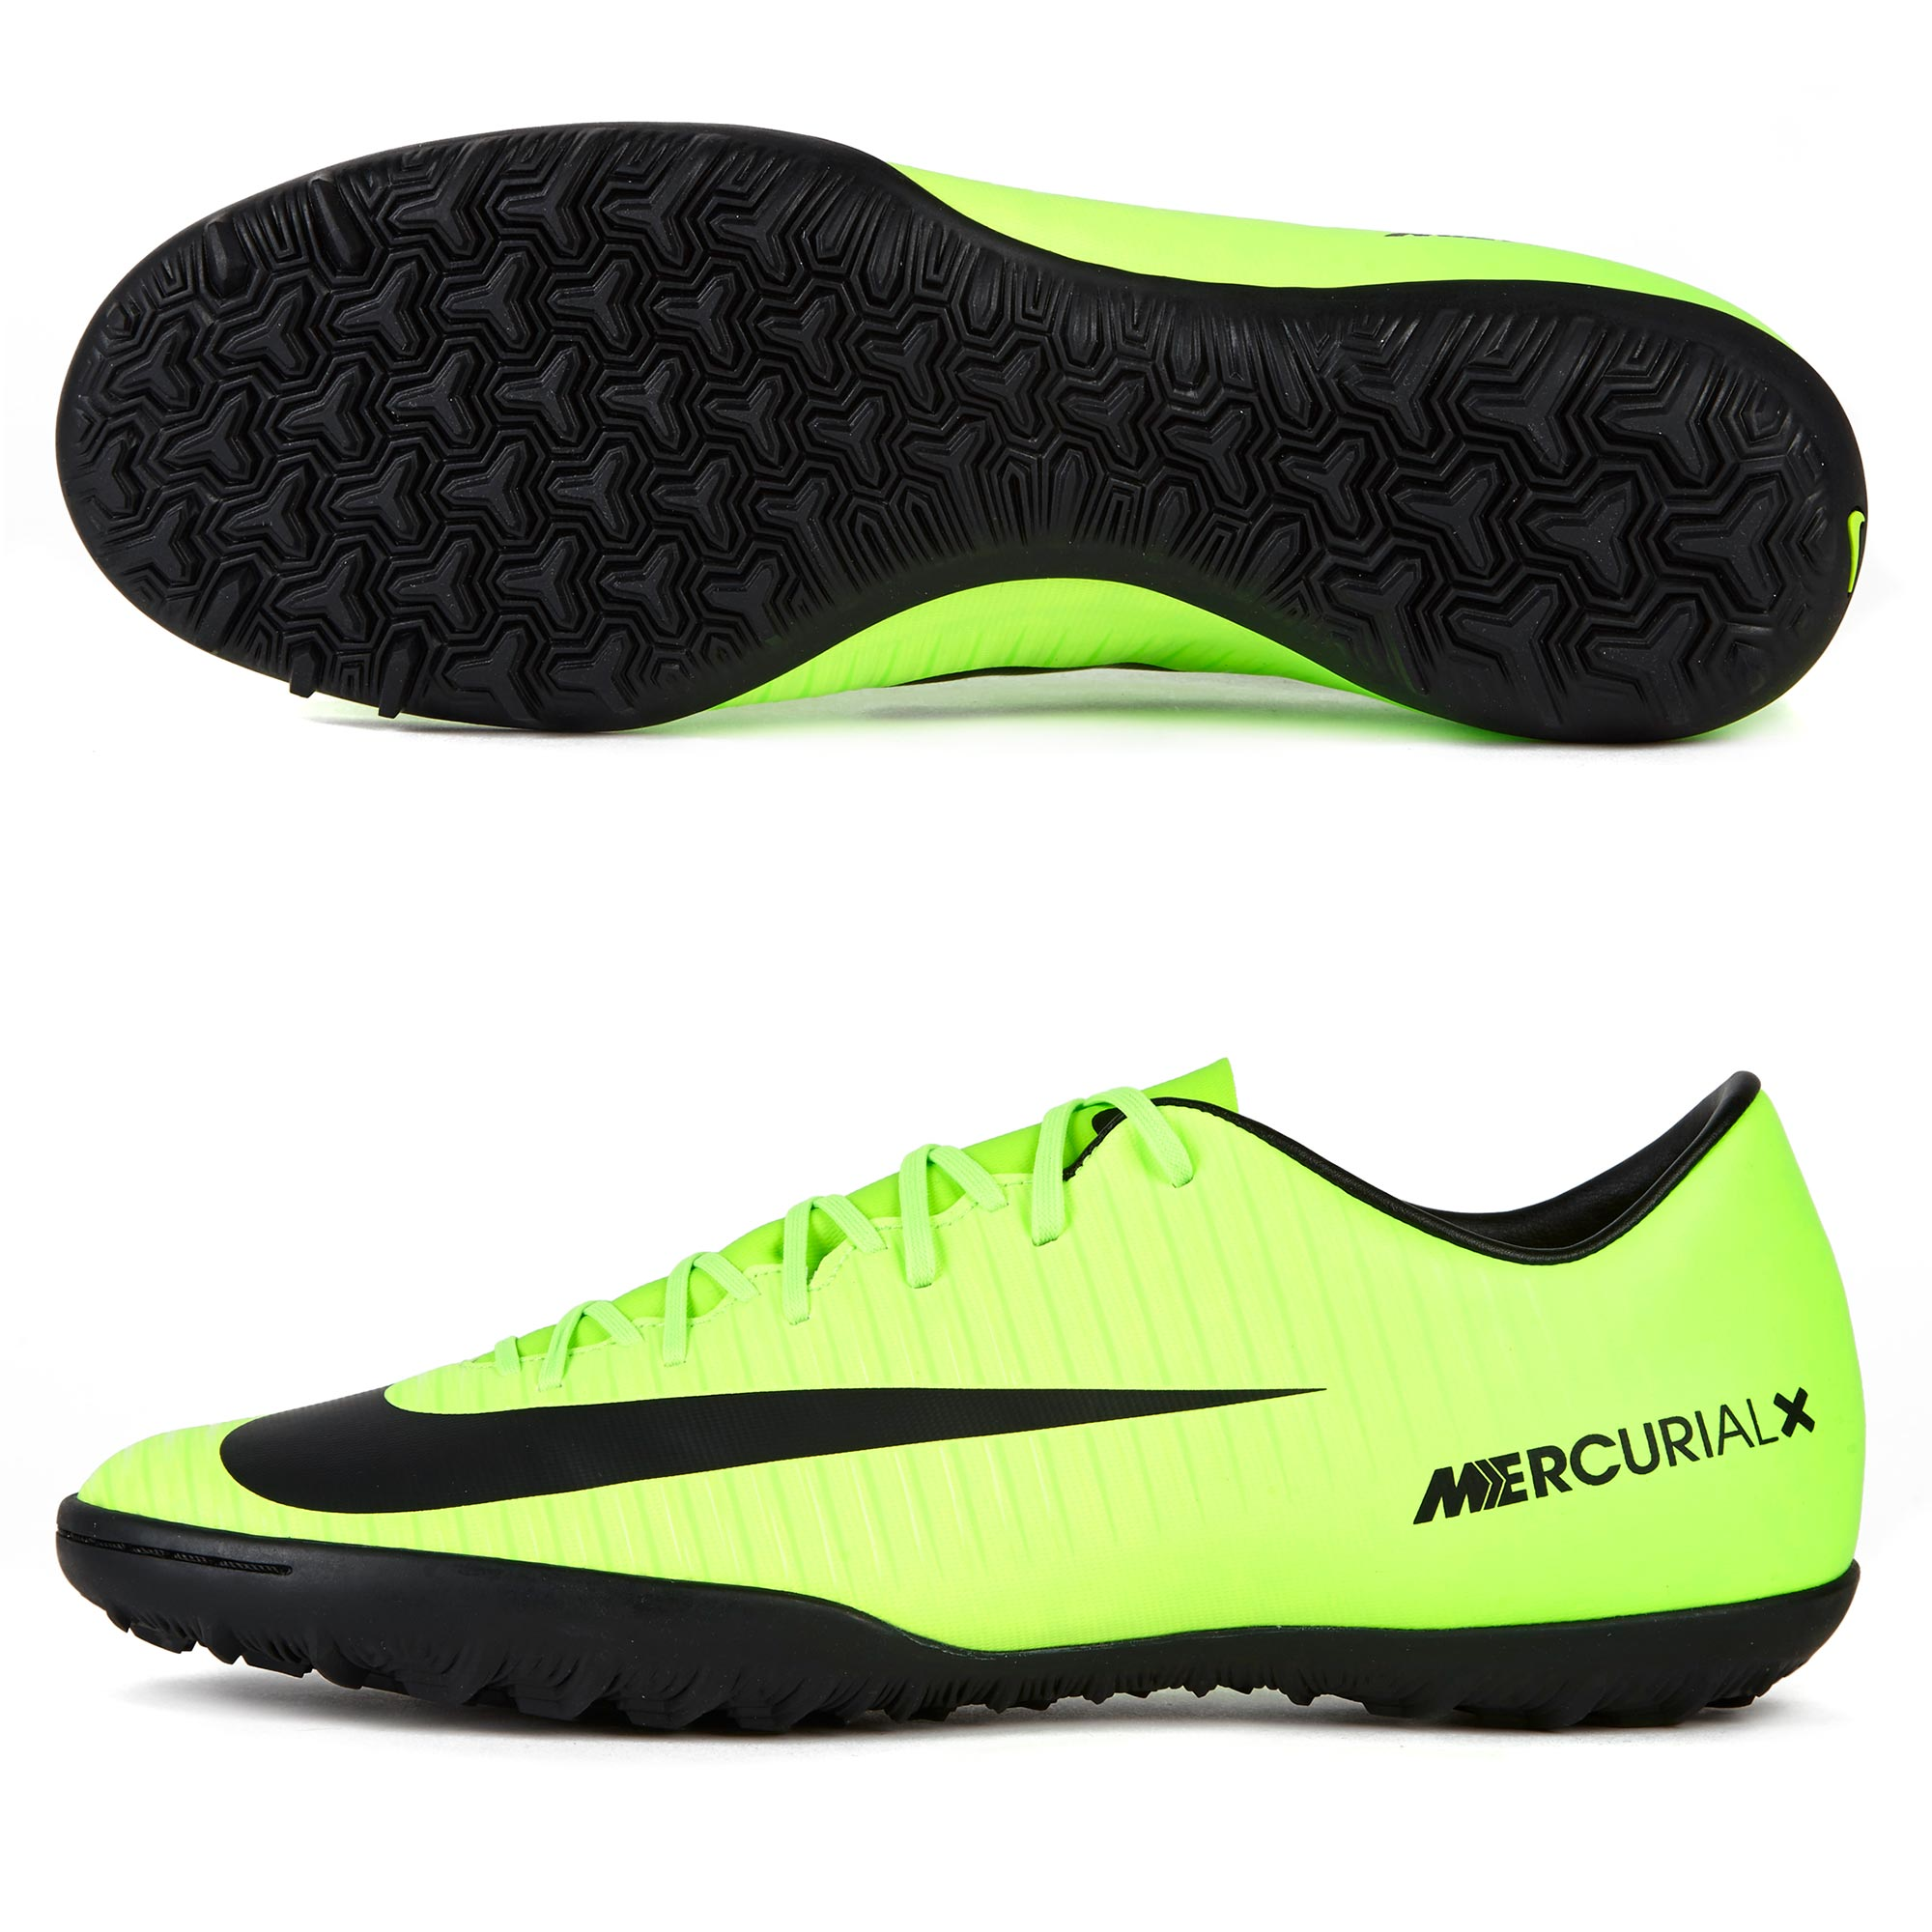 Nike Mercurial Victory VI Astroturf Trainers - Electric Green/Black/Fl